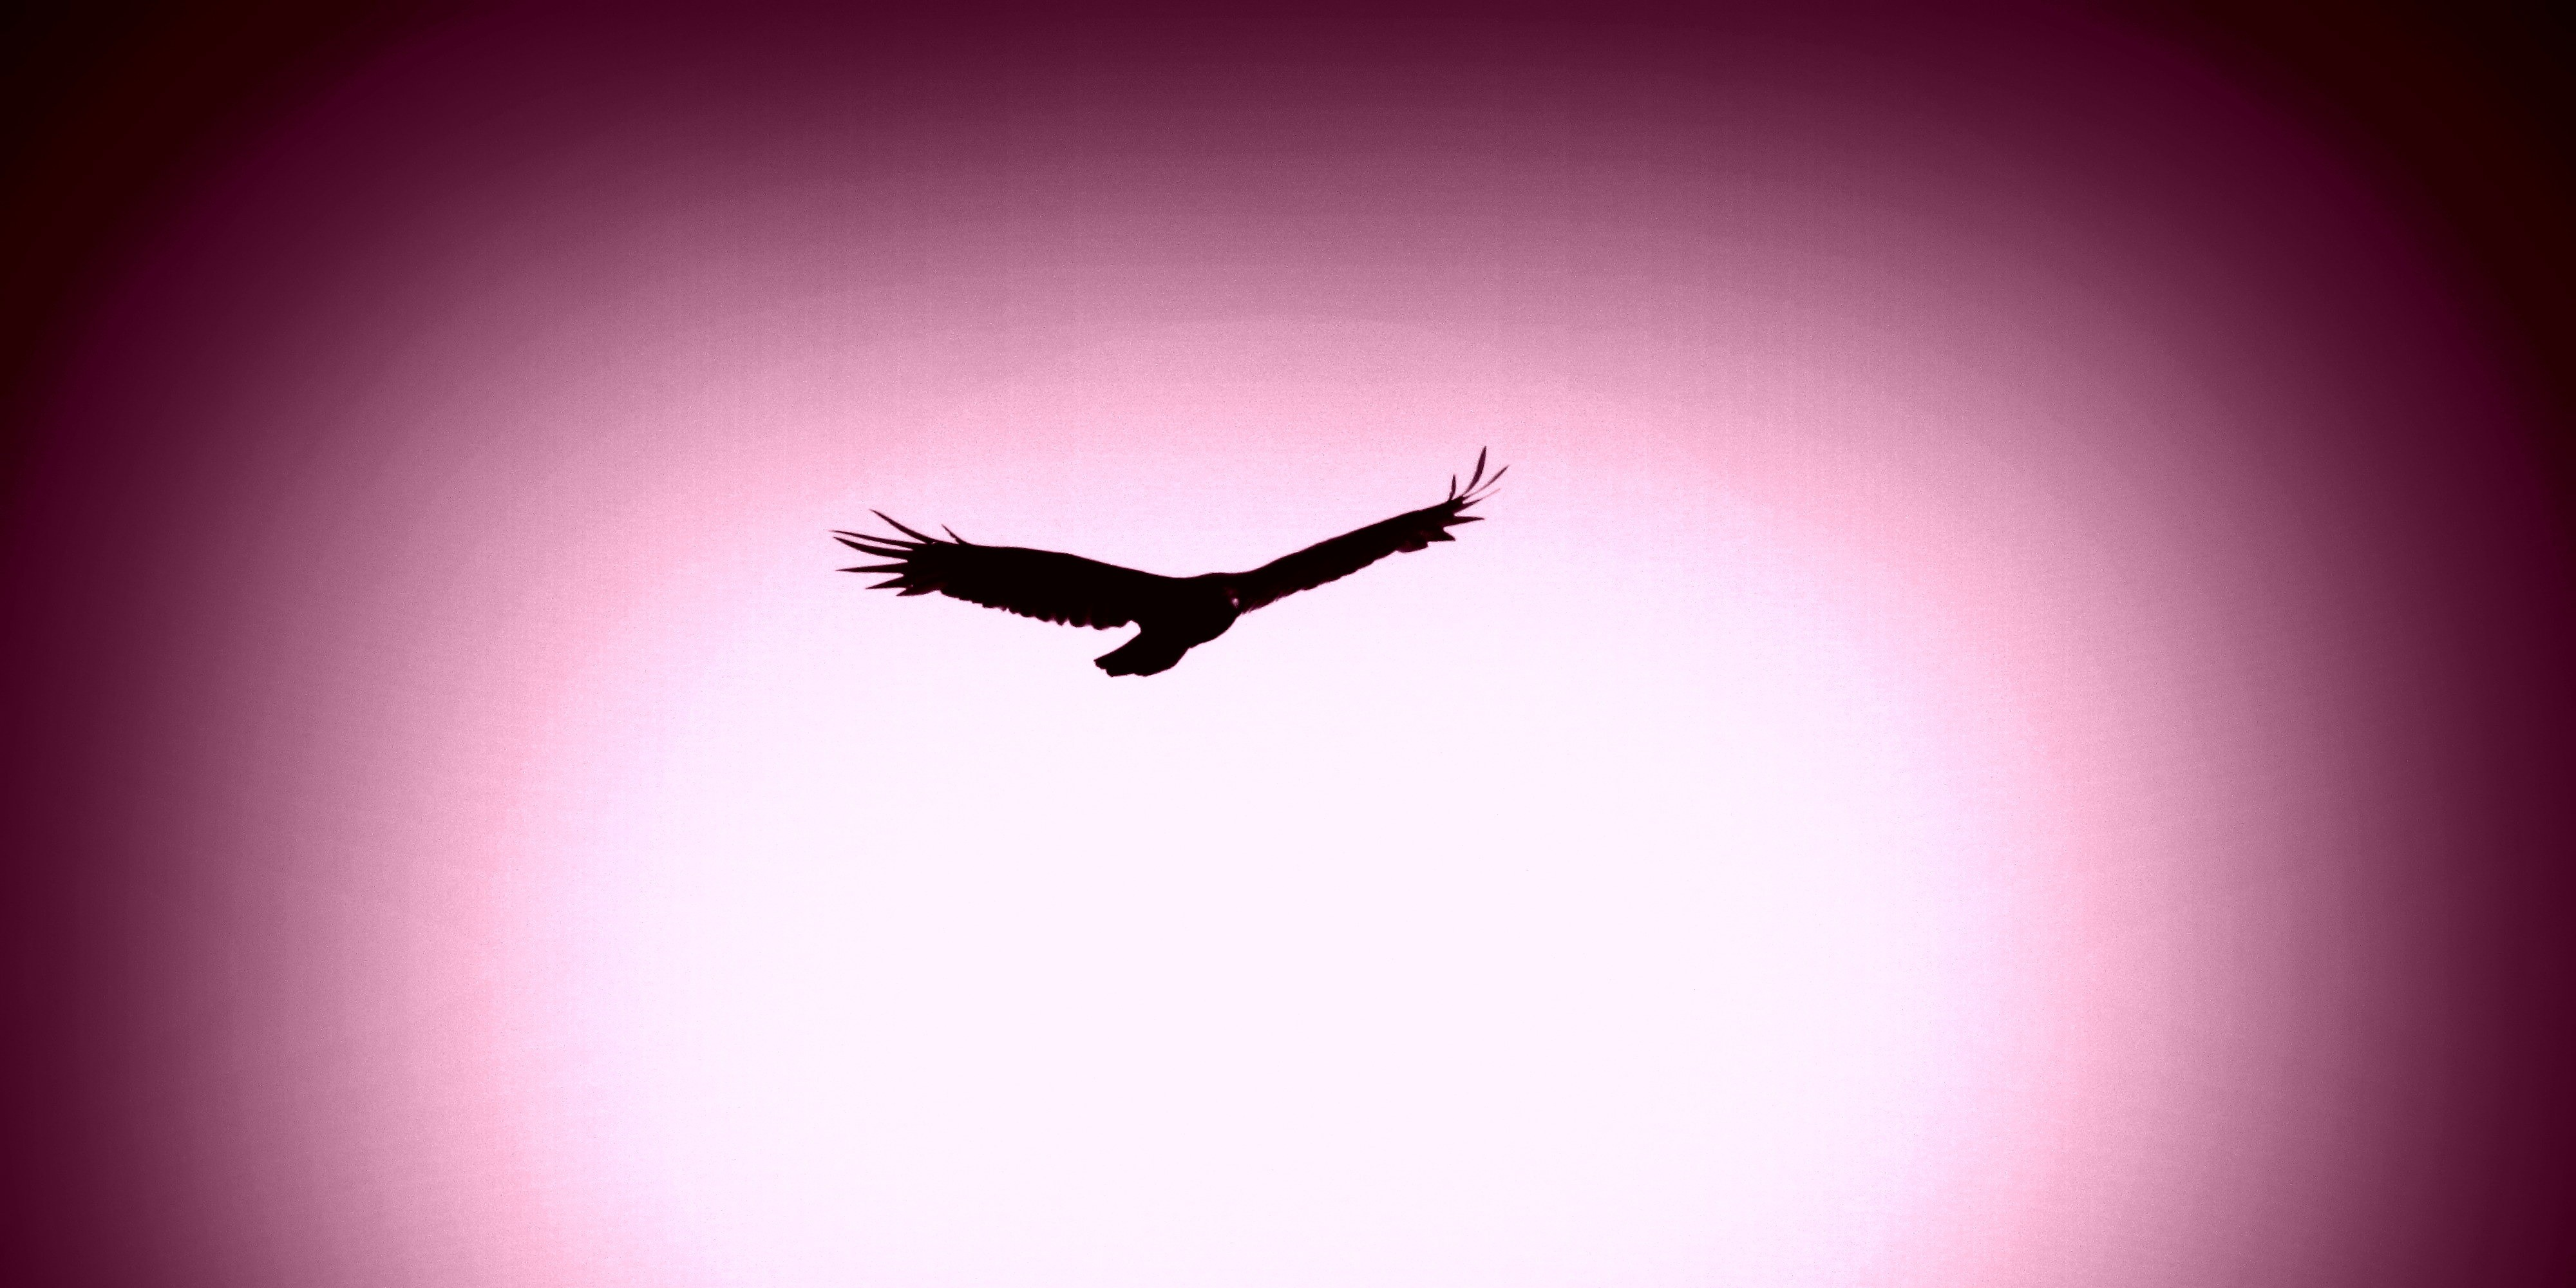 eagle-silhouette-on-a-light-purple-background2